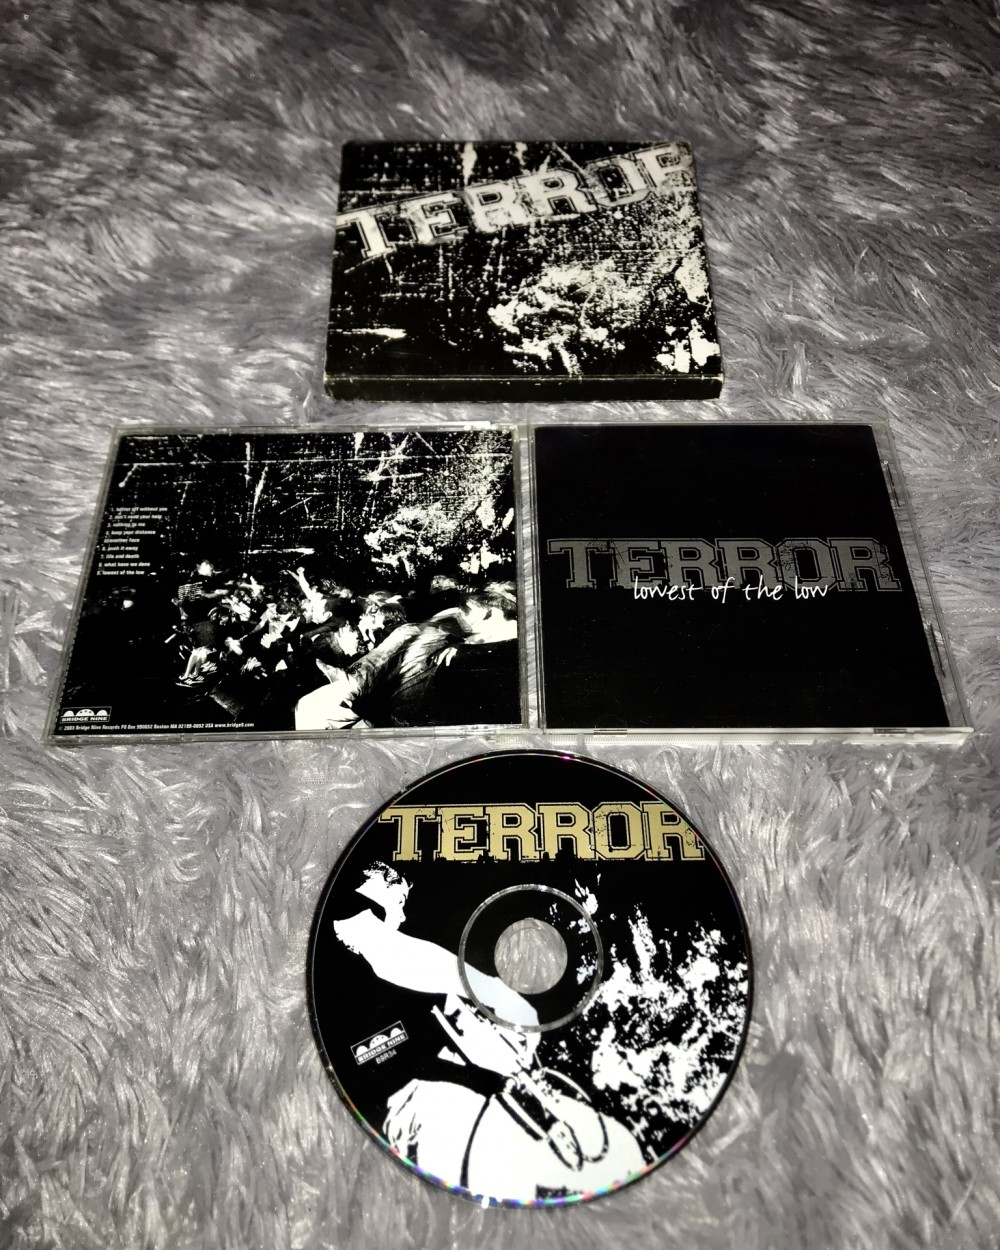 Terror - Lowest of the Low CD Photo